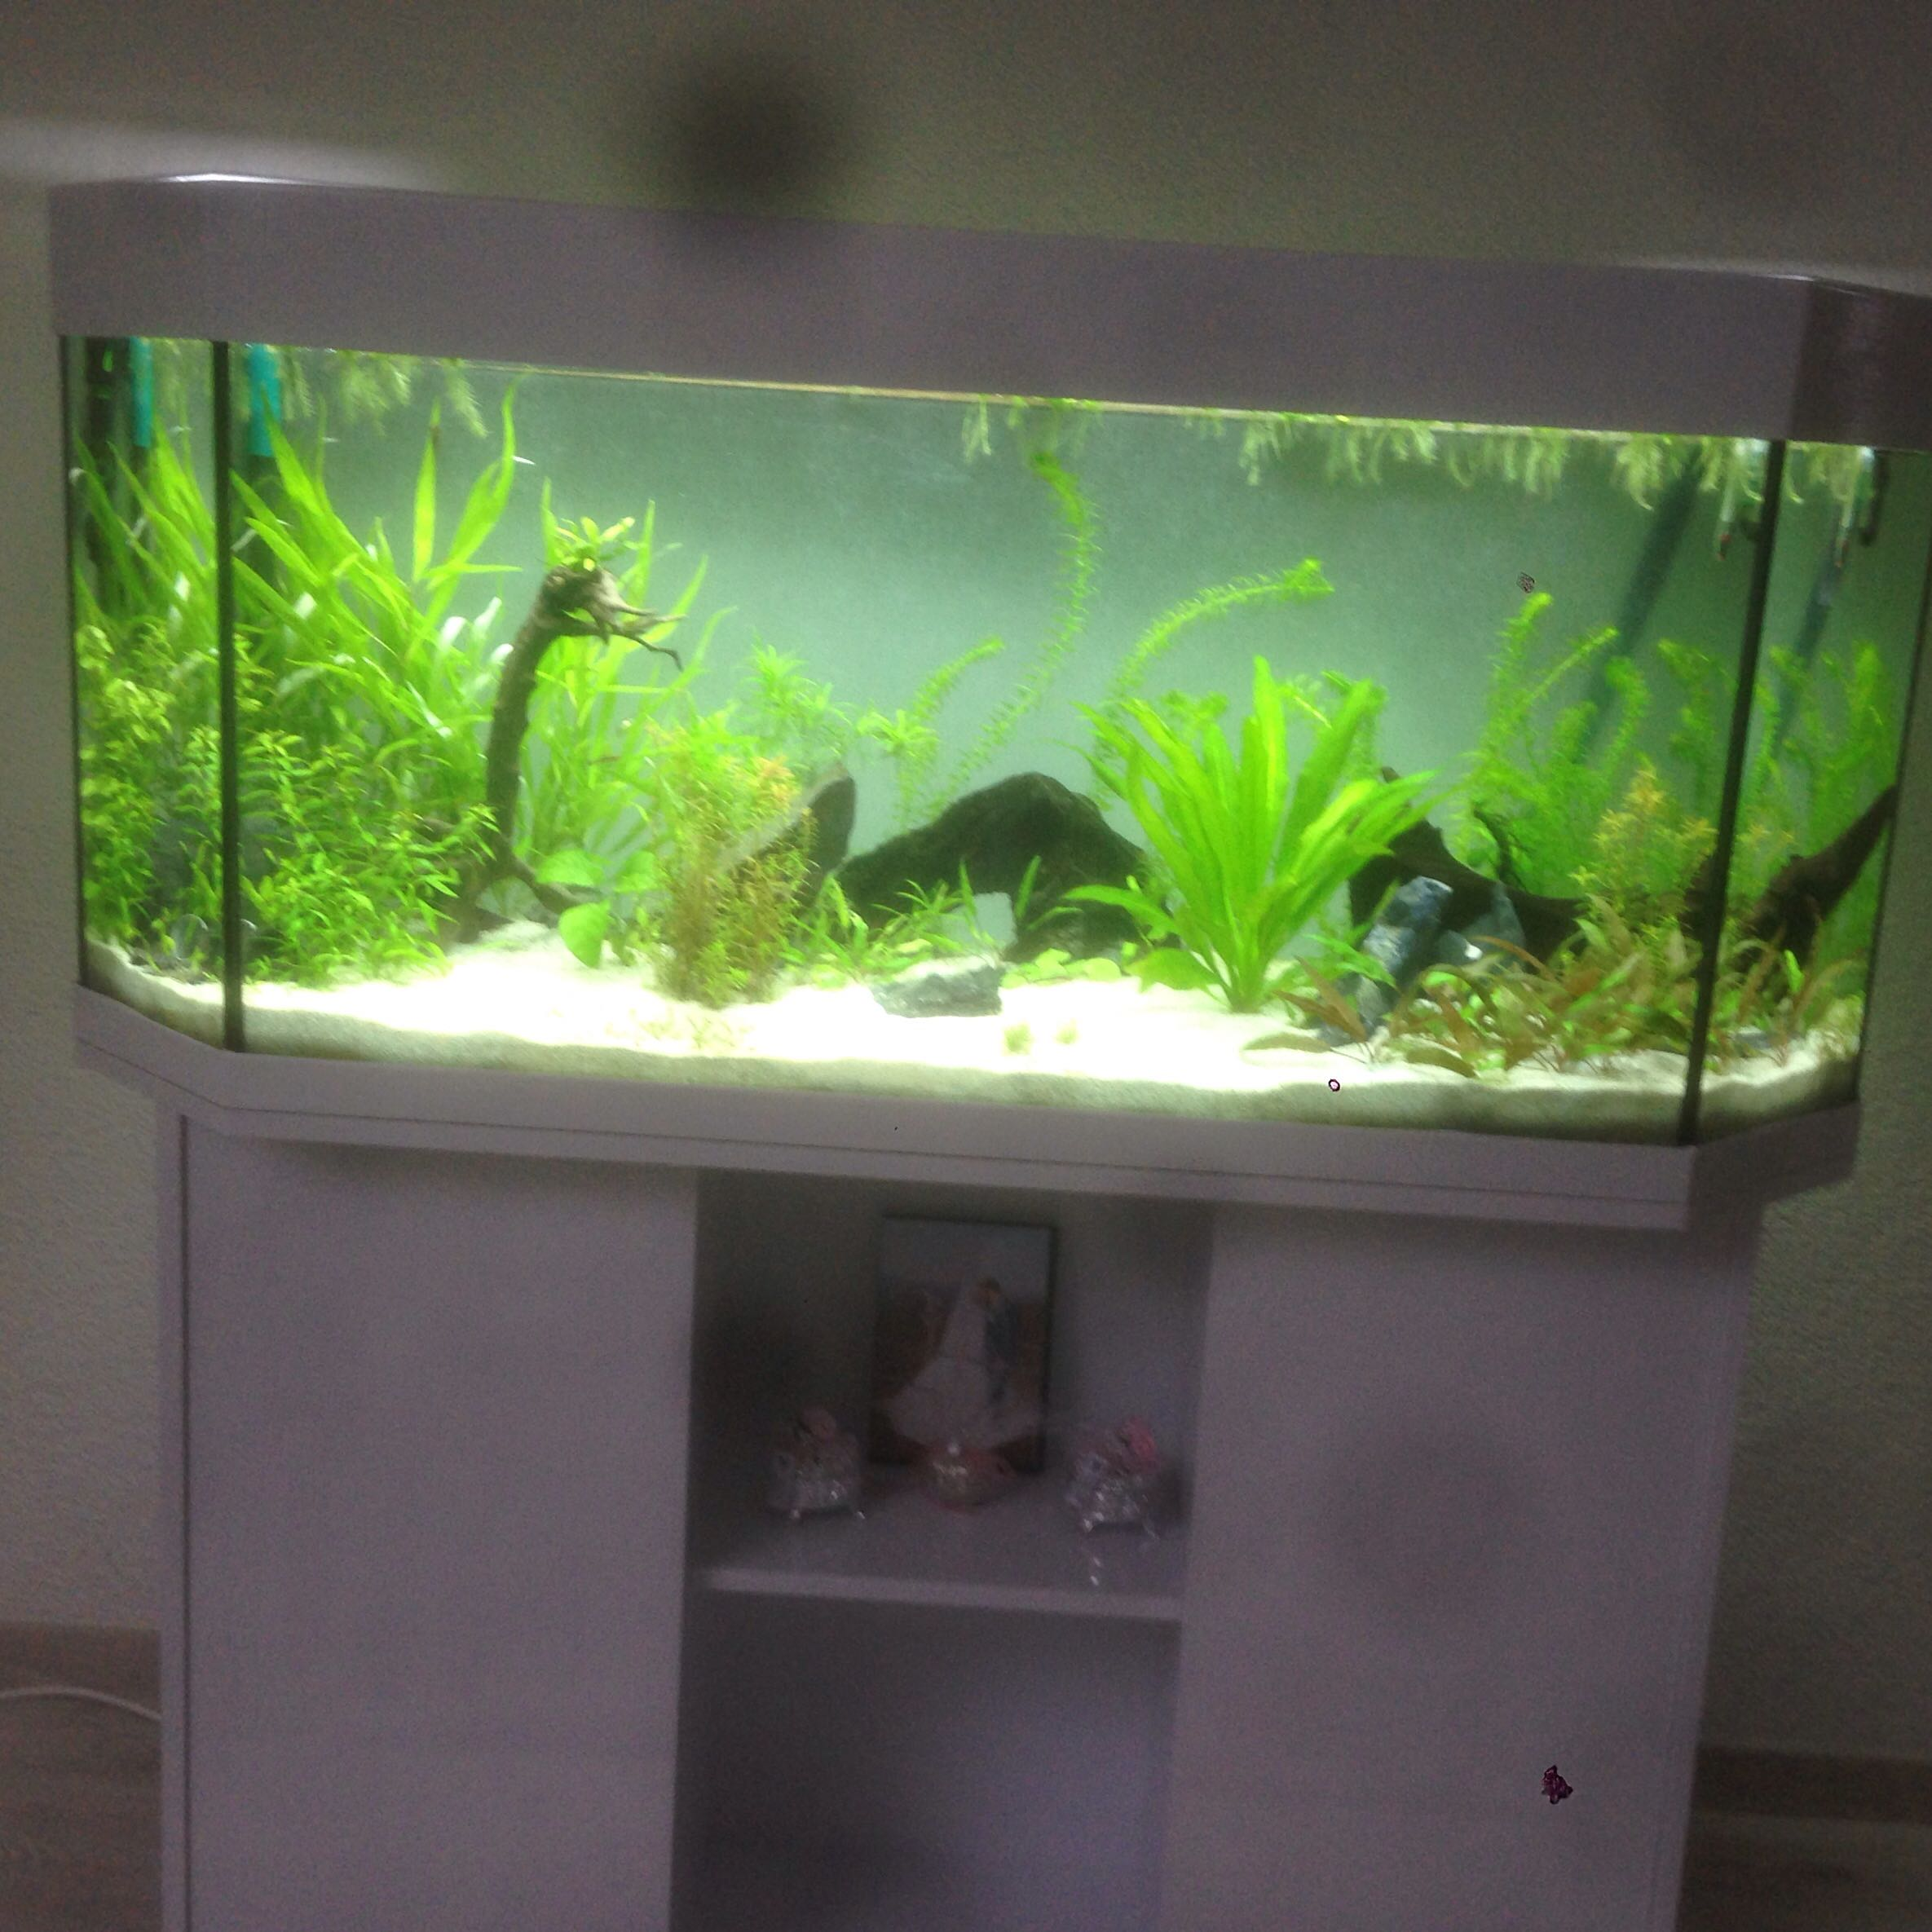 aquariumbesatz 250l fische aquarium skalare. Black Bedroom Furniture Sets. Home Design Ideas